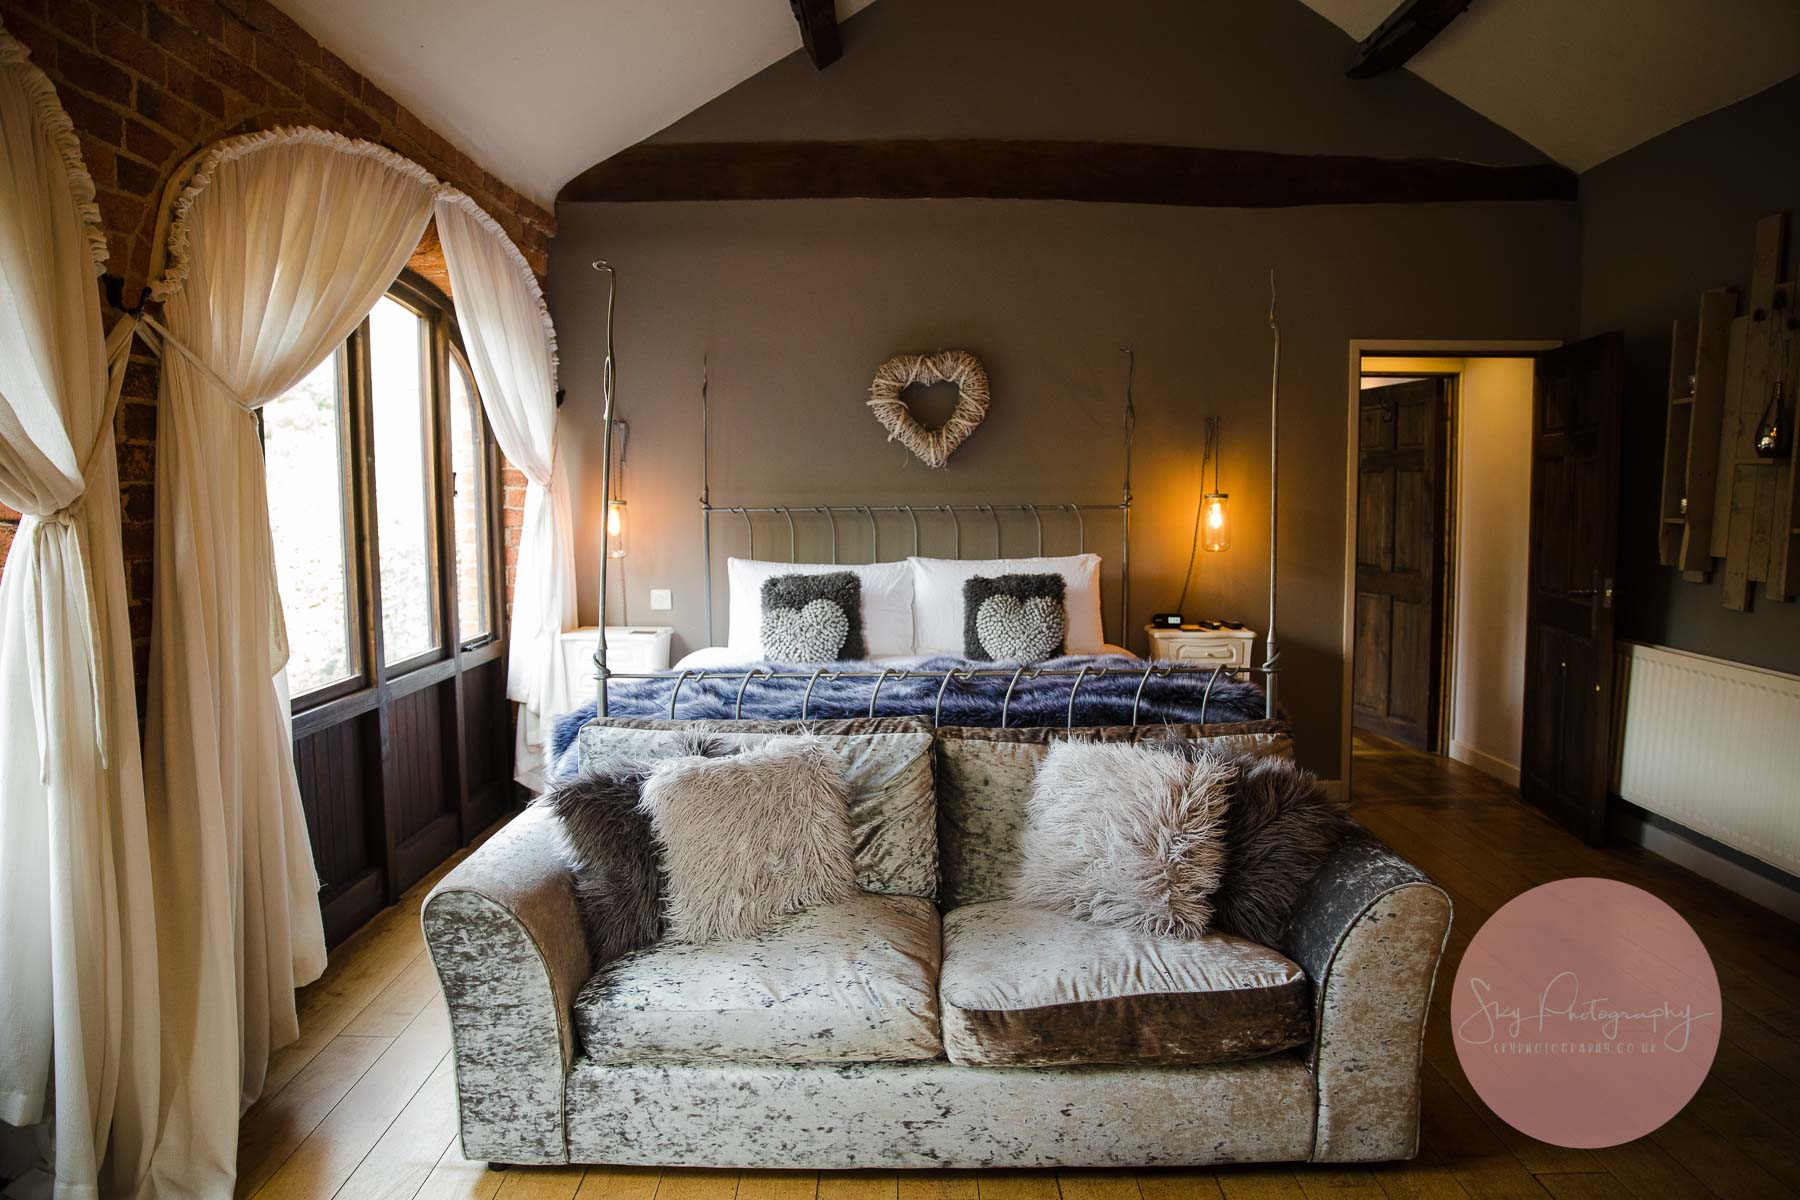 bed in the bridal suite